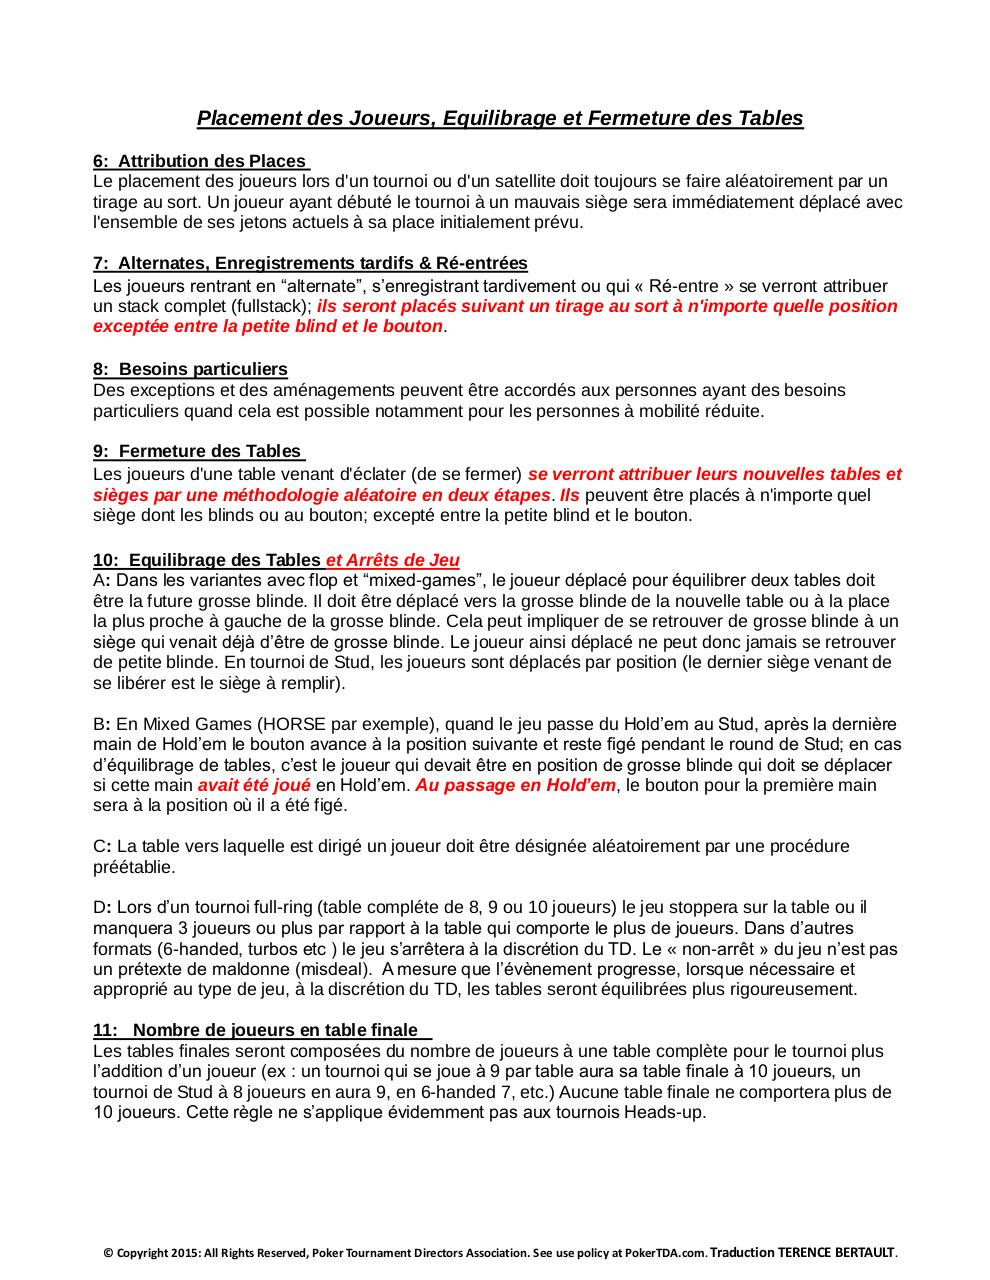 POKER - TDA 2015 - Français 1.0 - shortform with redlines.pdf - page 2/12